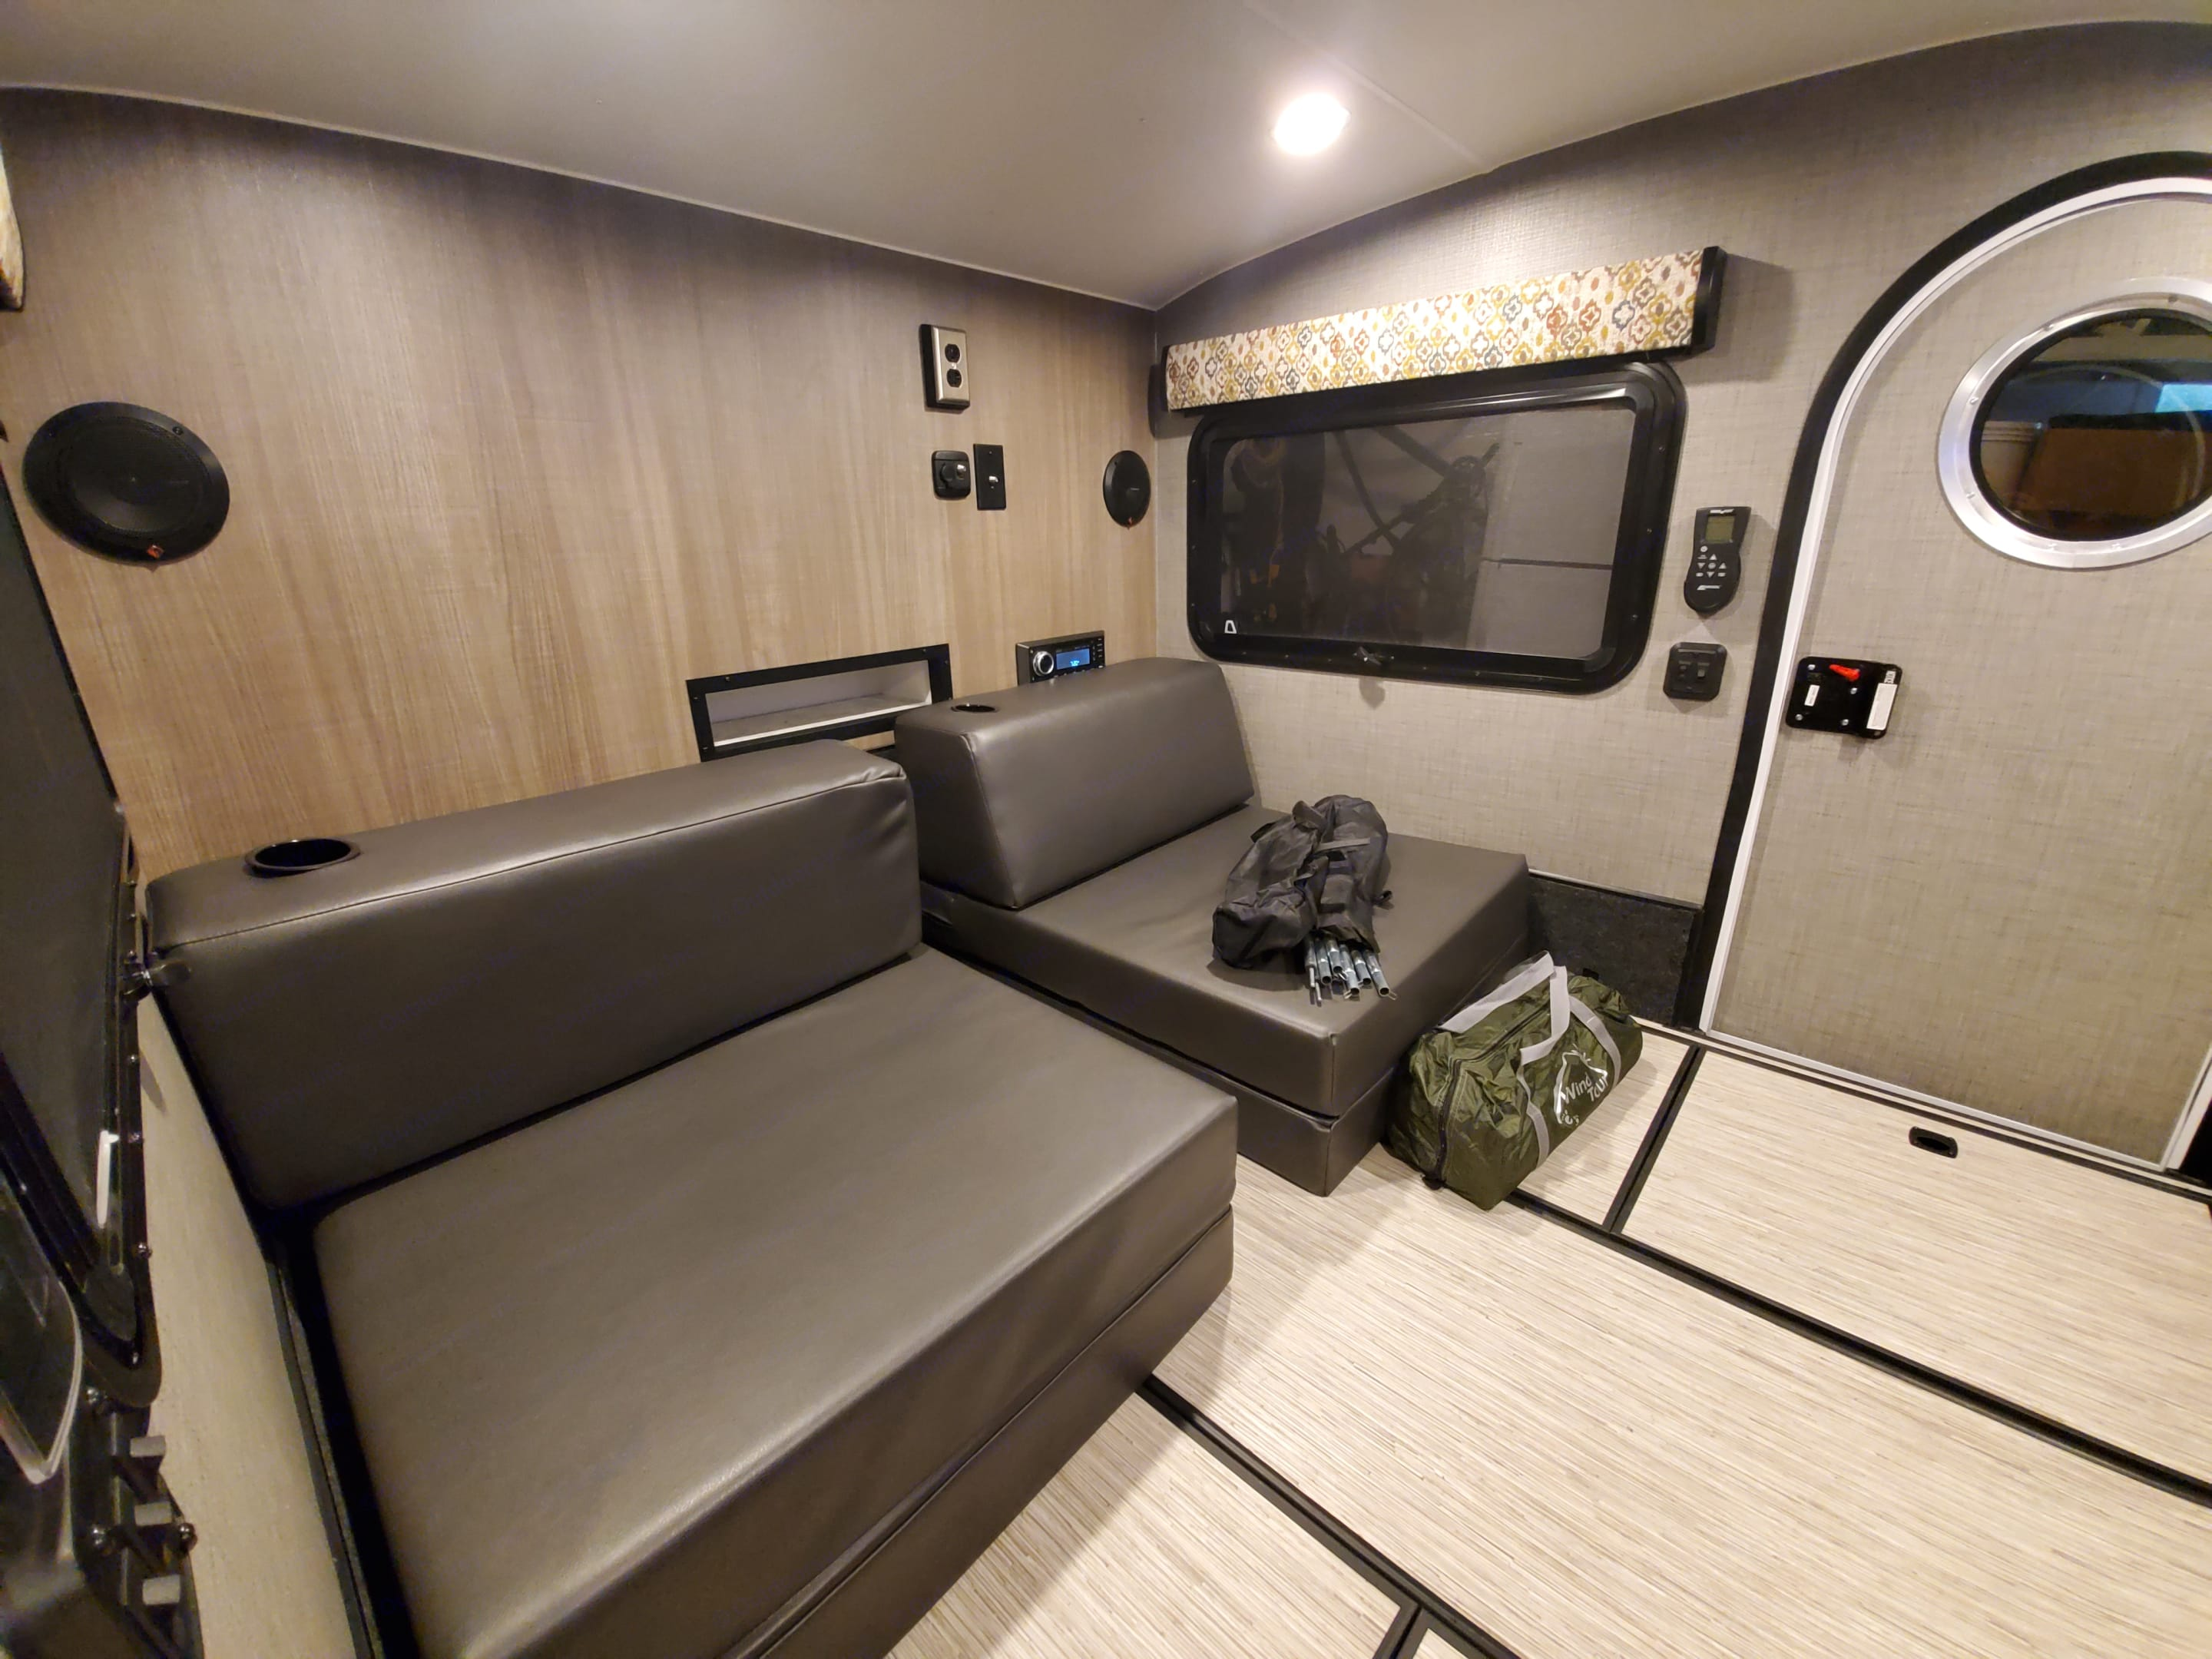 The mattress can be converted into chairs and can be used inside or outside to enjoy your coffee and listening to your favorite music with crisp sound system.. InTech RV Luna 2018